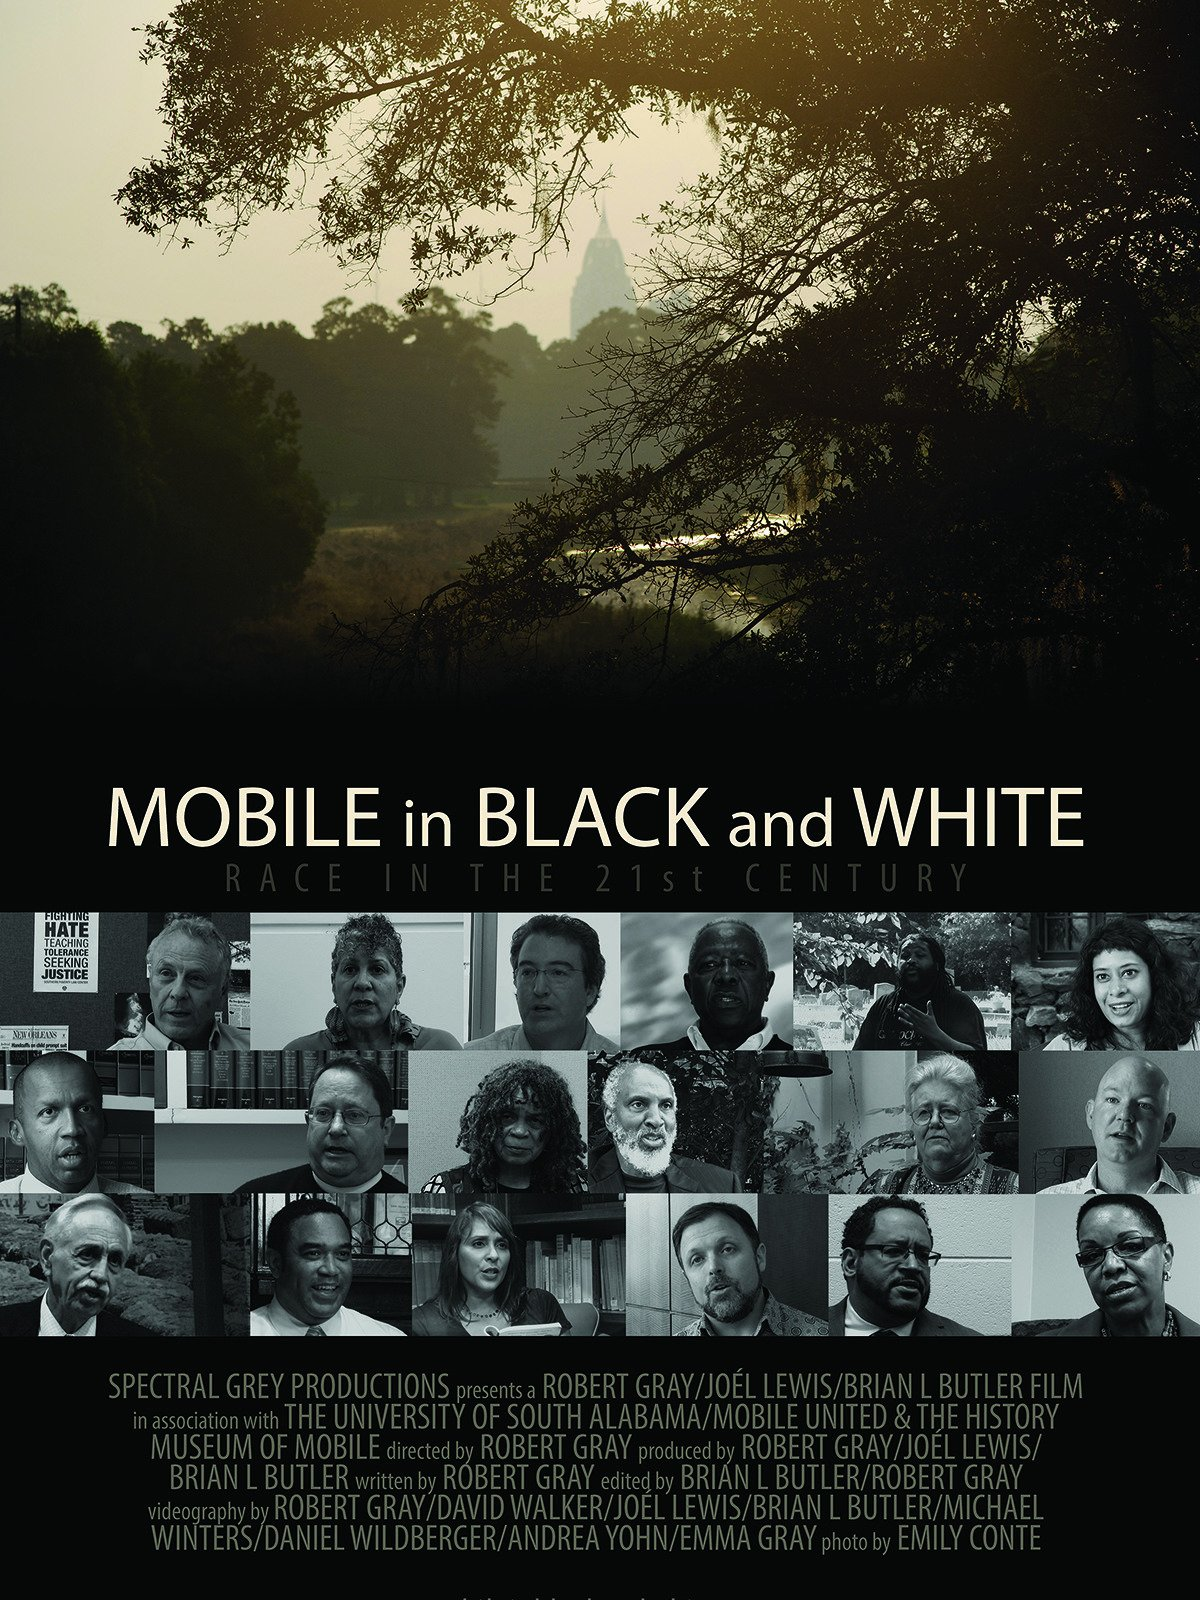 Mobile in Black and White